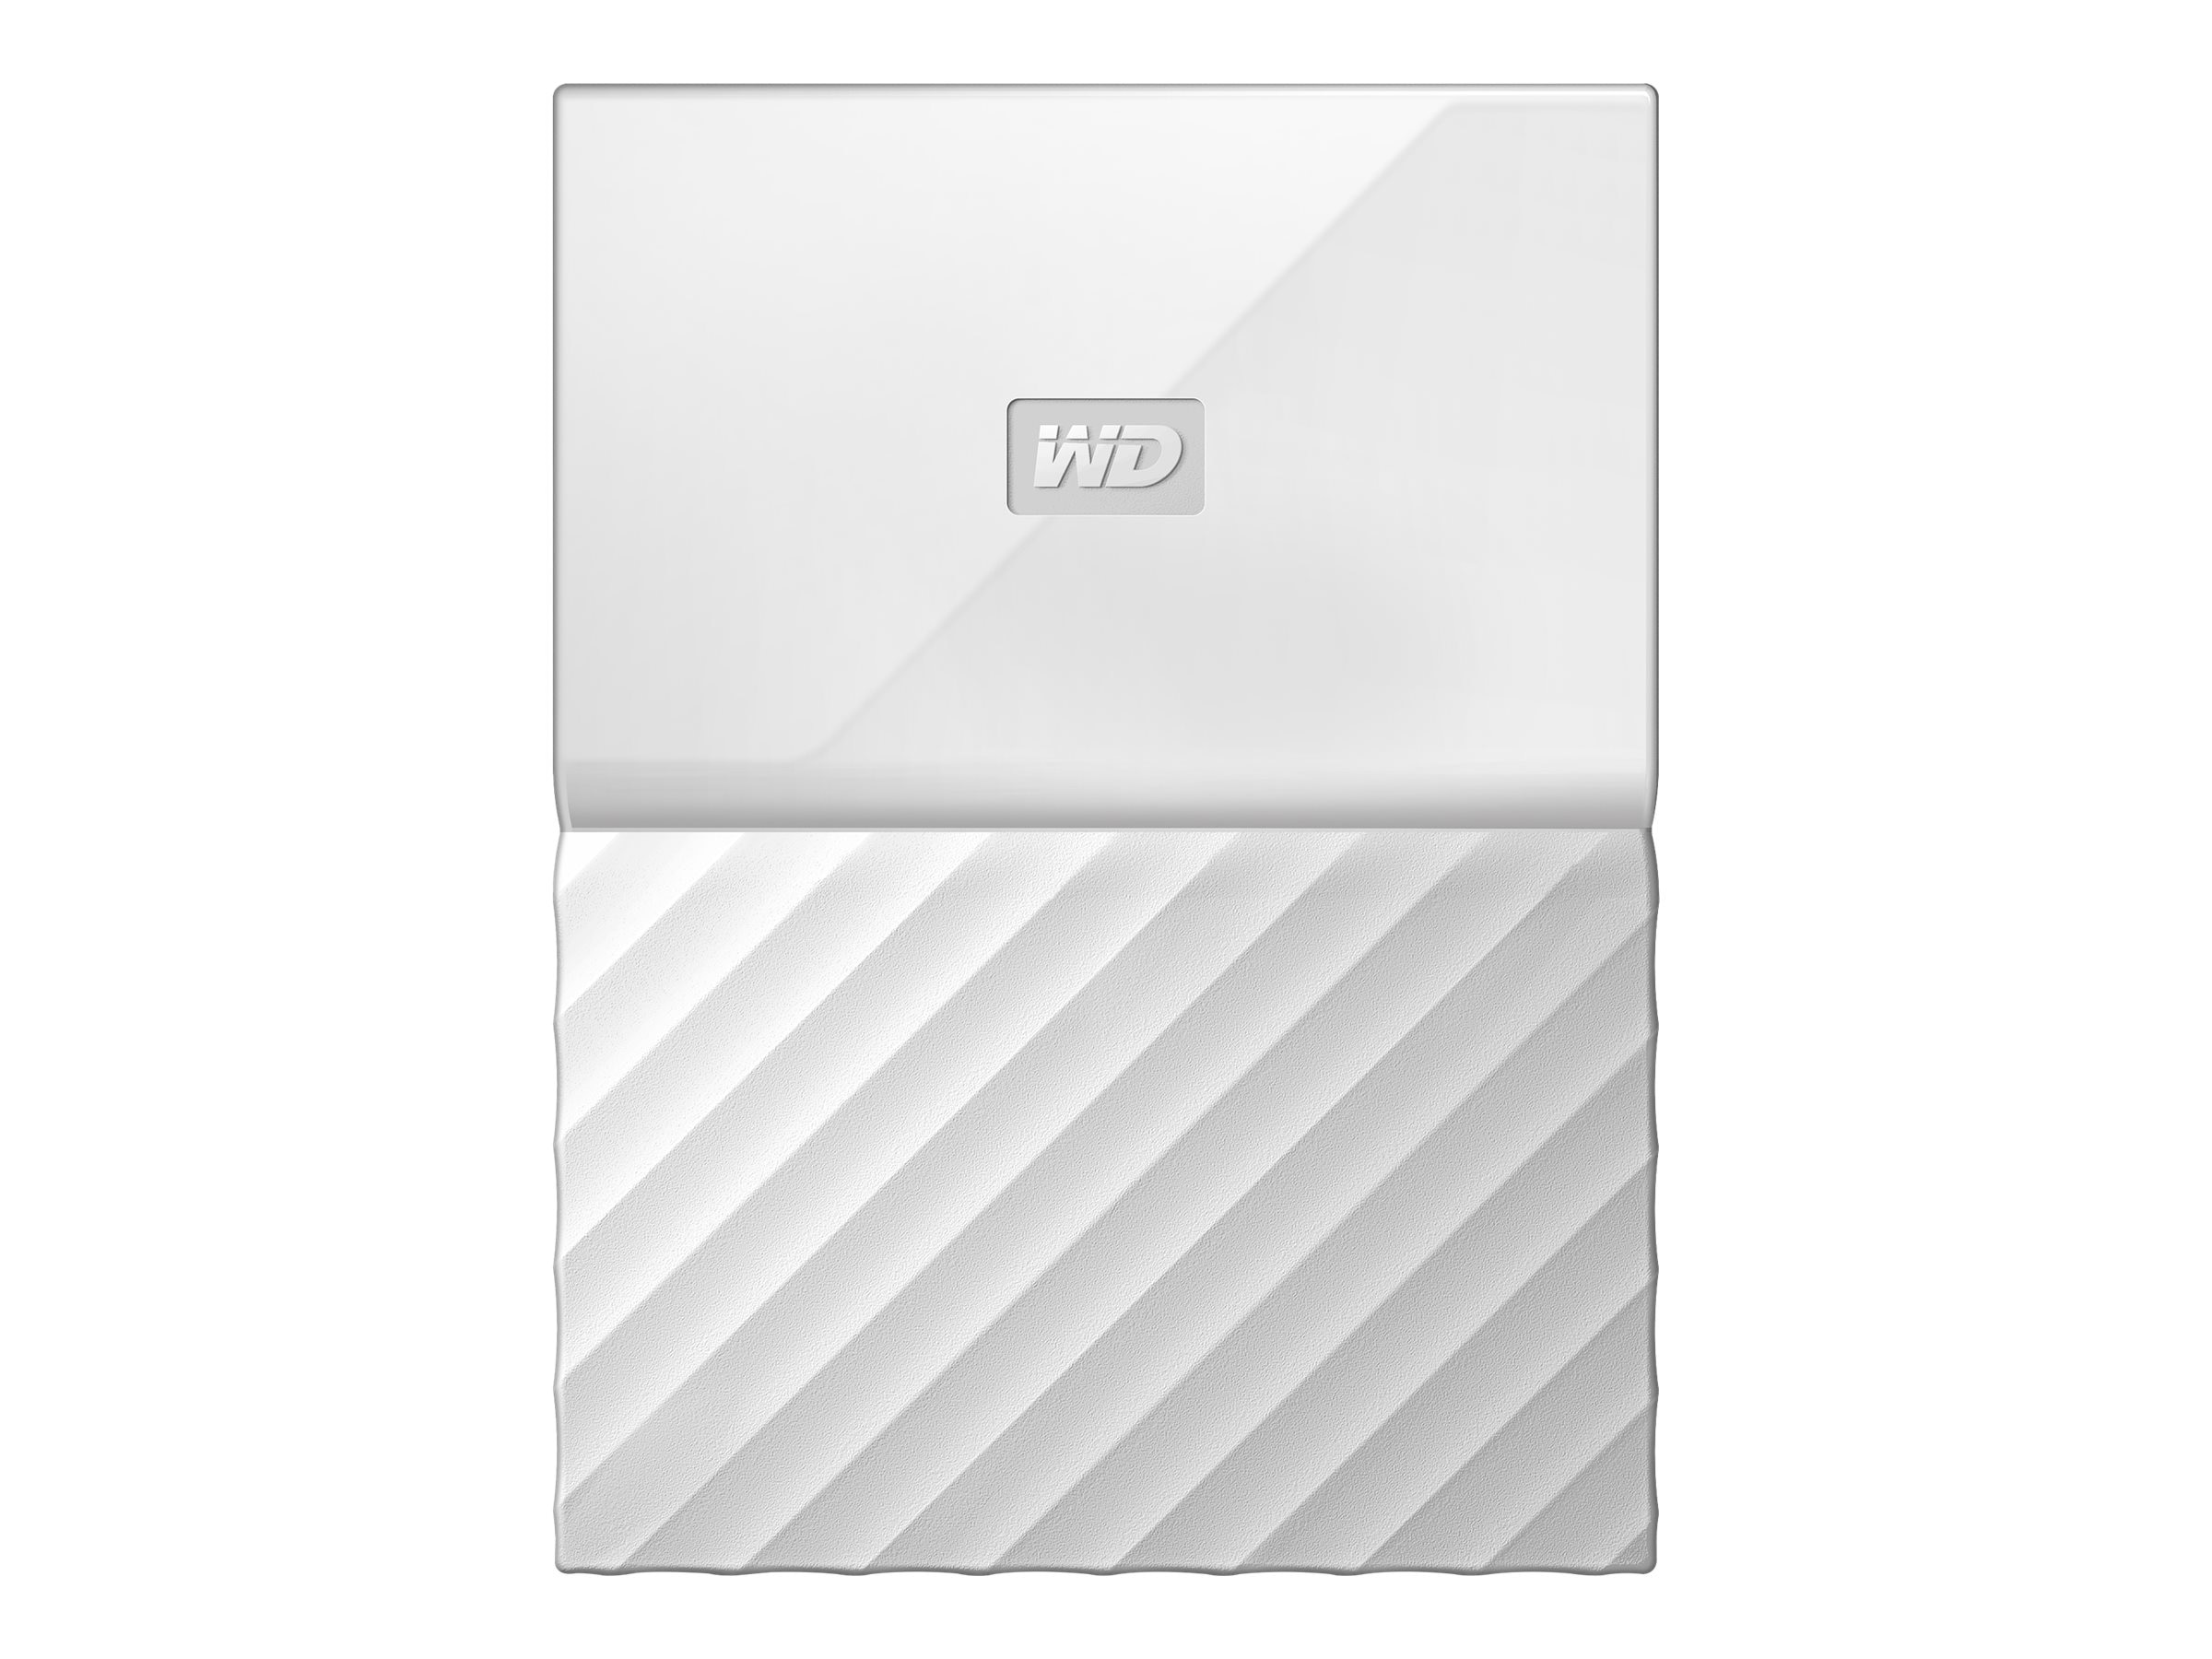 WD 1TB My Passport USB 3.0 Portable Hard Drive - White, WDBYNN0010BWT-WESN